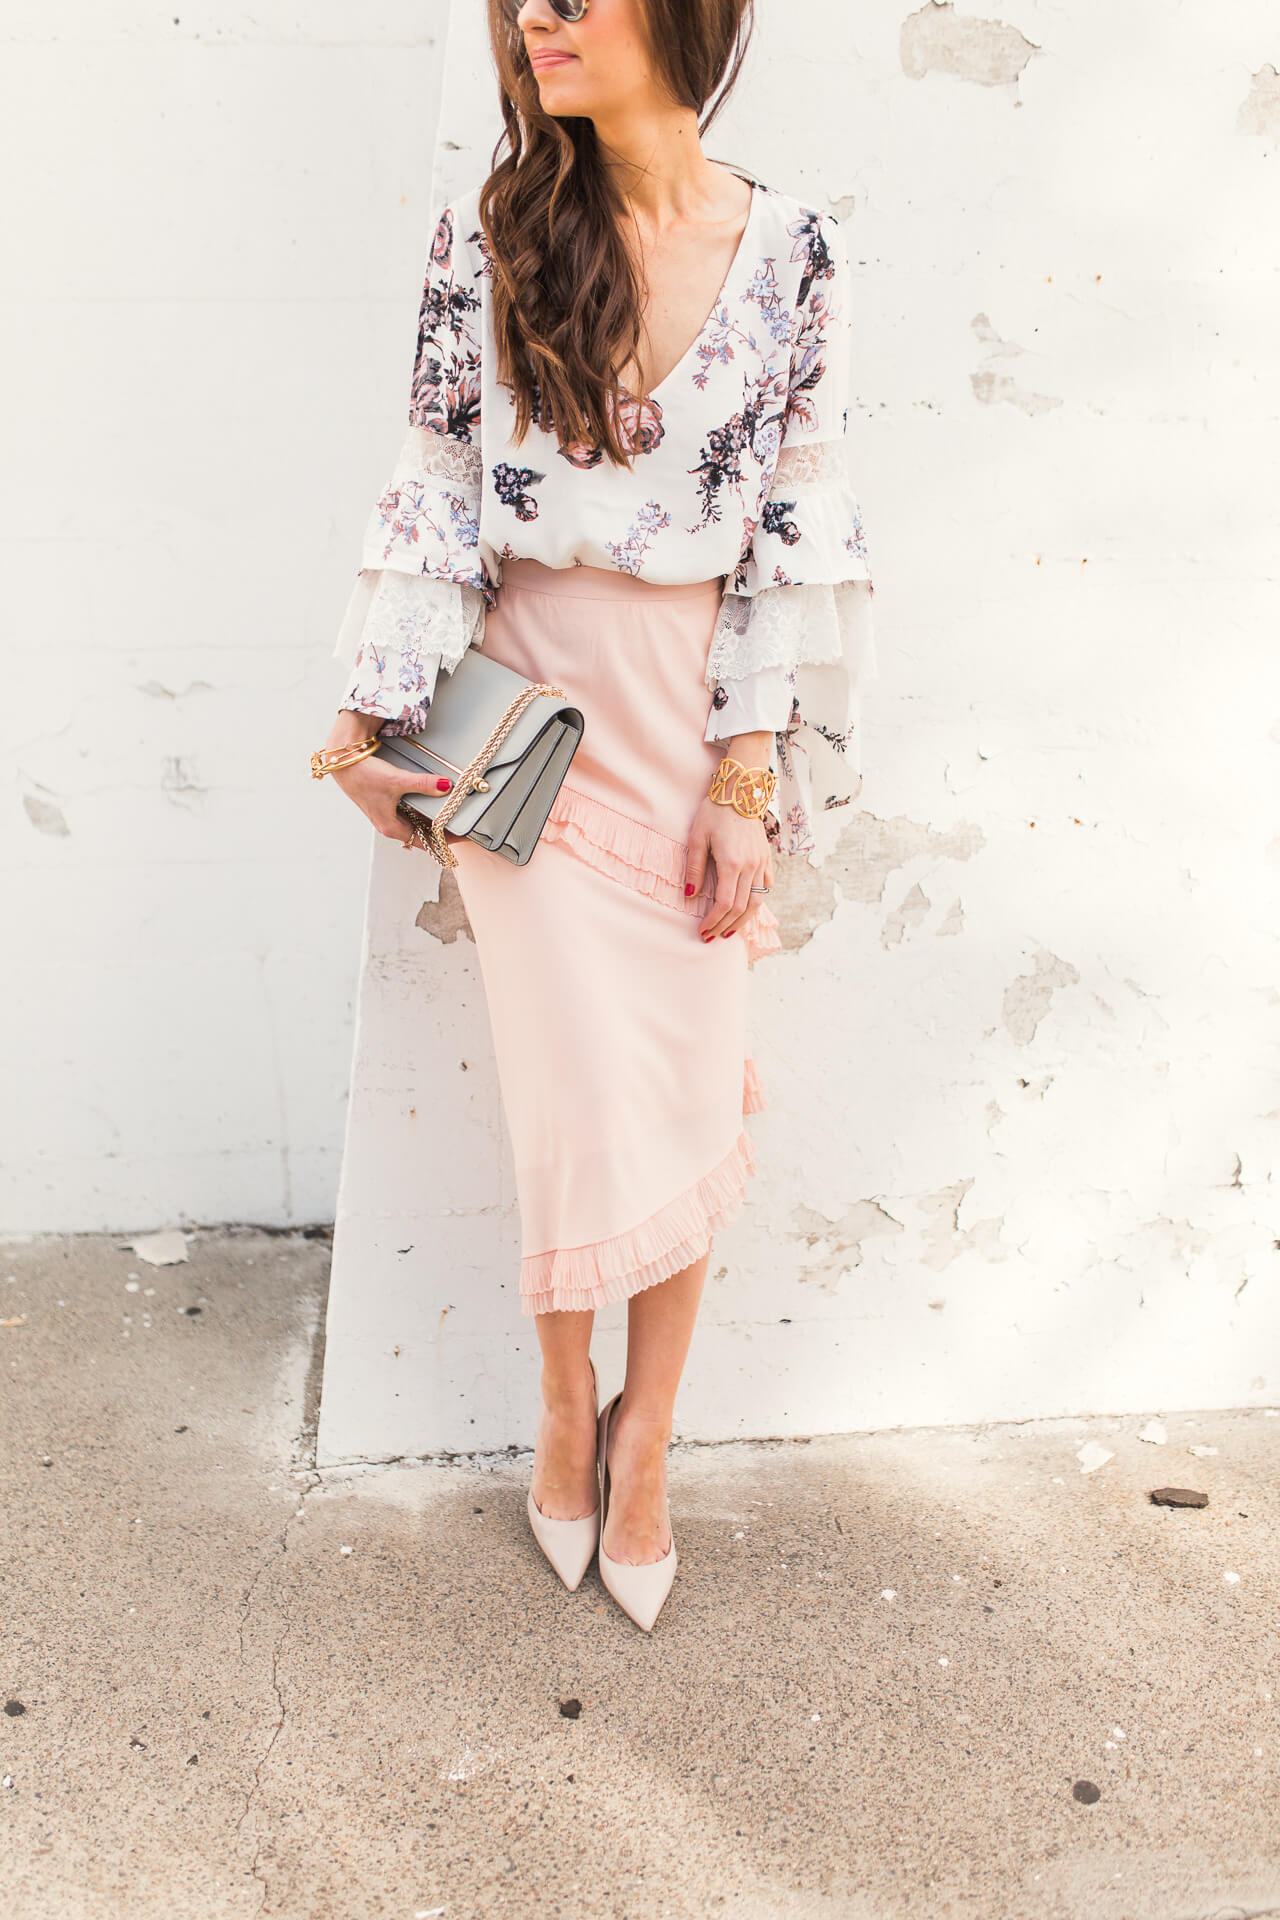 modest fashion blogger outfit inspiration - M Loves M